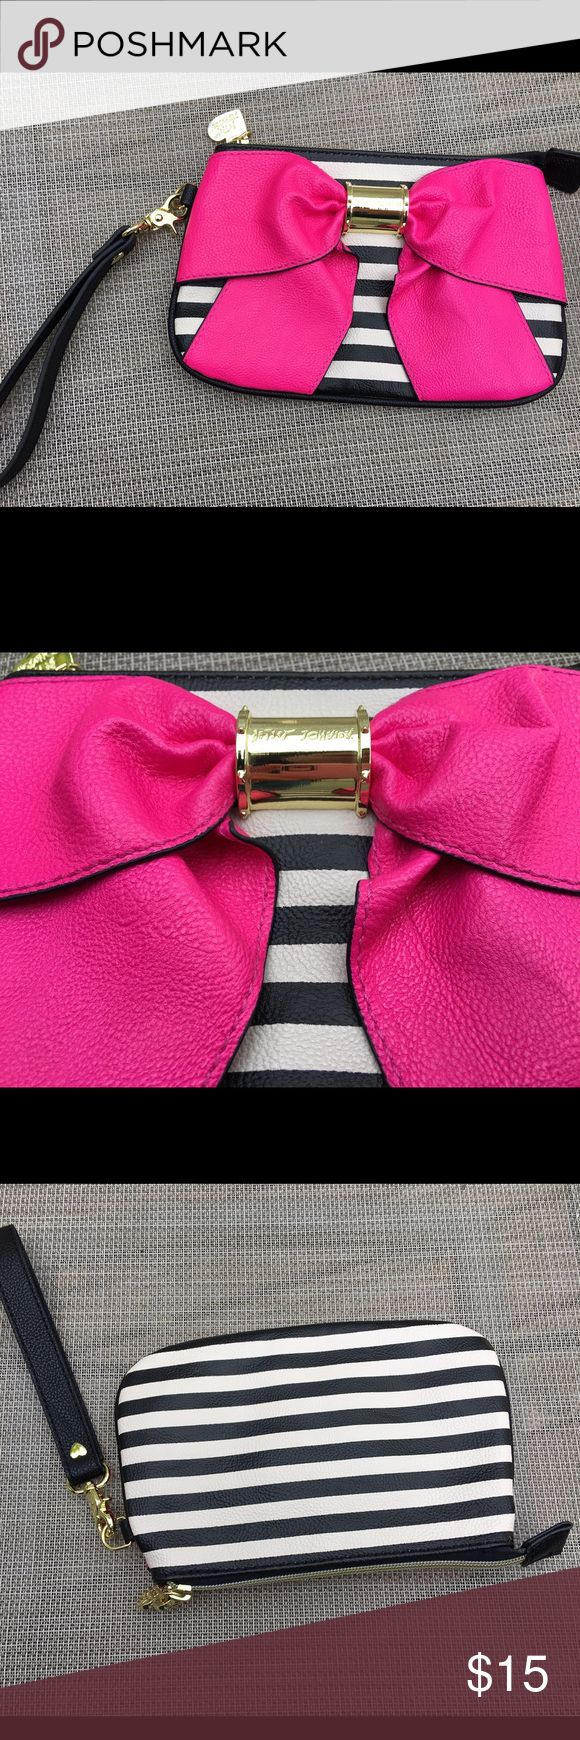 Betsy Johnson clutch Betsy Johnson striped clutch with bow. Like new condition. Non smoking home Bags Clutches & Wristlets